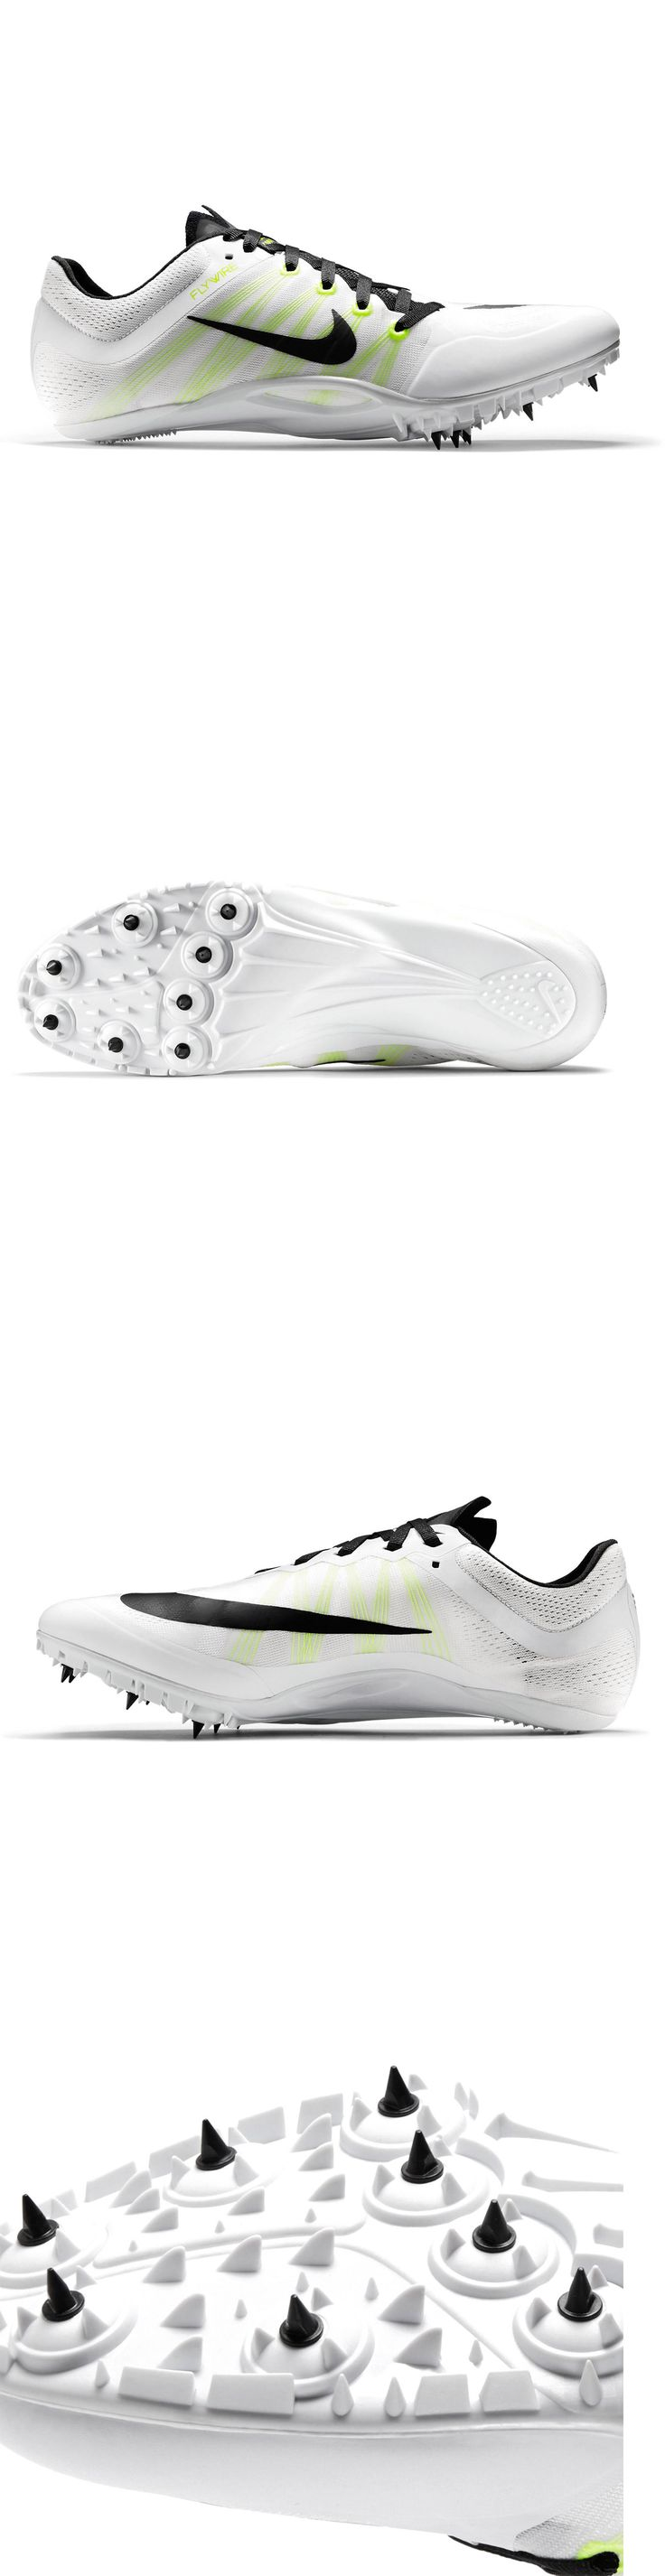 Track and Field 106981: New Nike Zoom Ja Fly 2 Ii Mens Track And Field Spikes Sprint Shoes : White Volt -> BUY IT NOW ONLY: $34.8 on eBay!